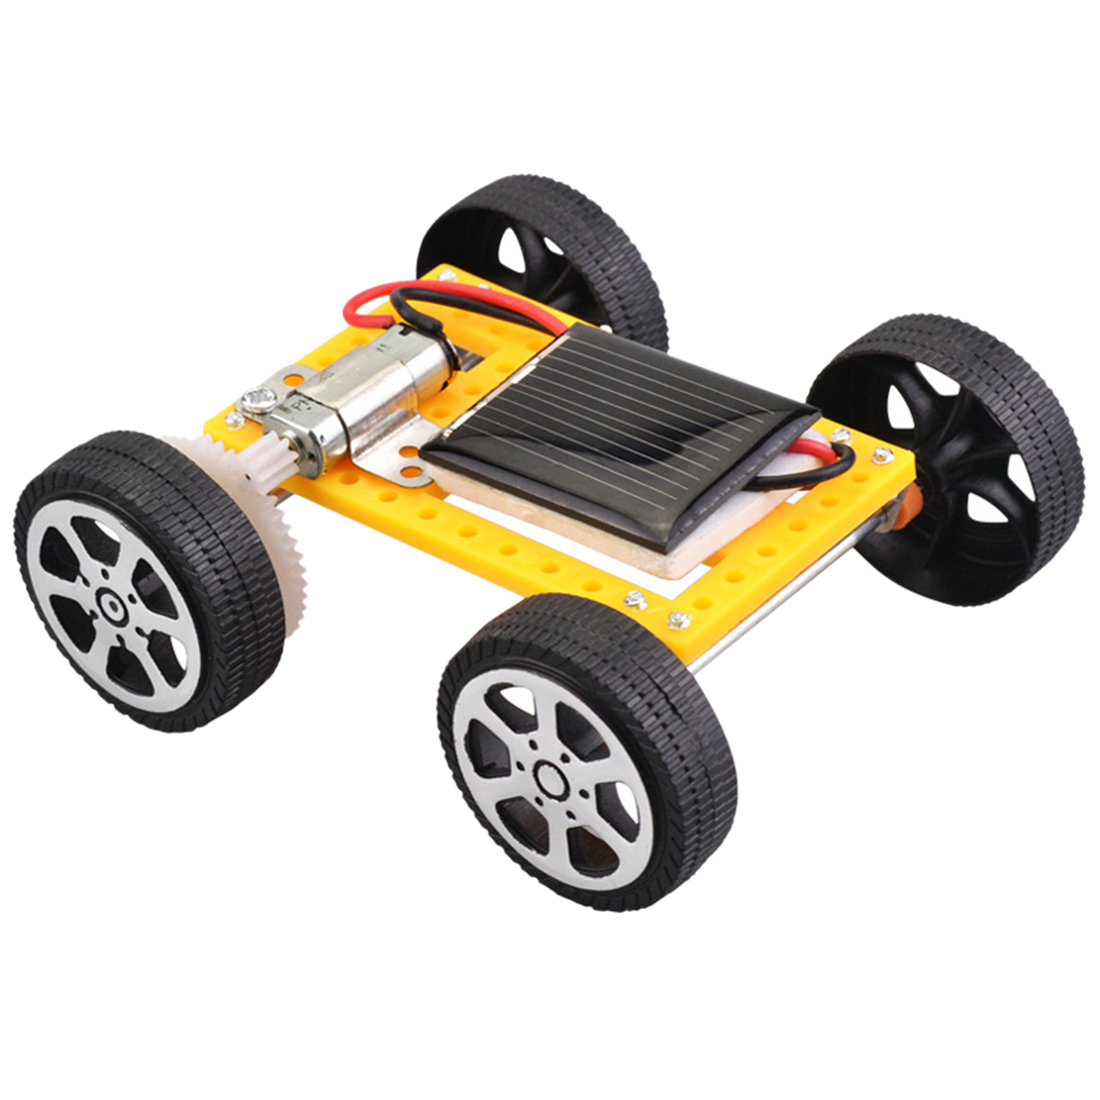 New Arrive Children Educational Toys No.2 DIY Mini Solar Powered Car Science Experiment Toy For Student Class Learning Kits